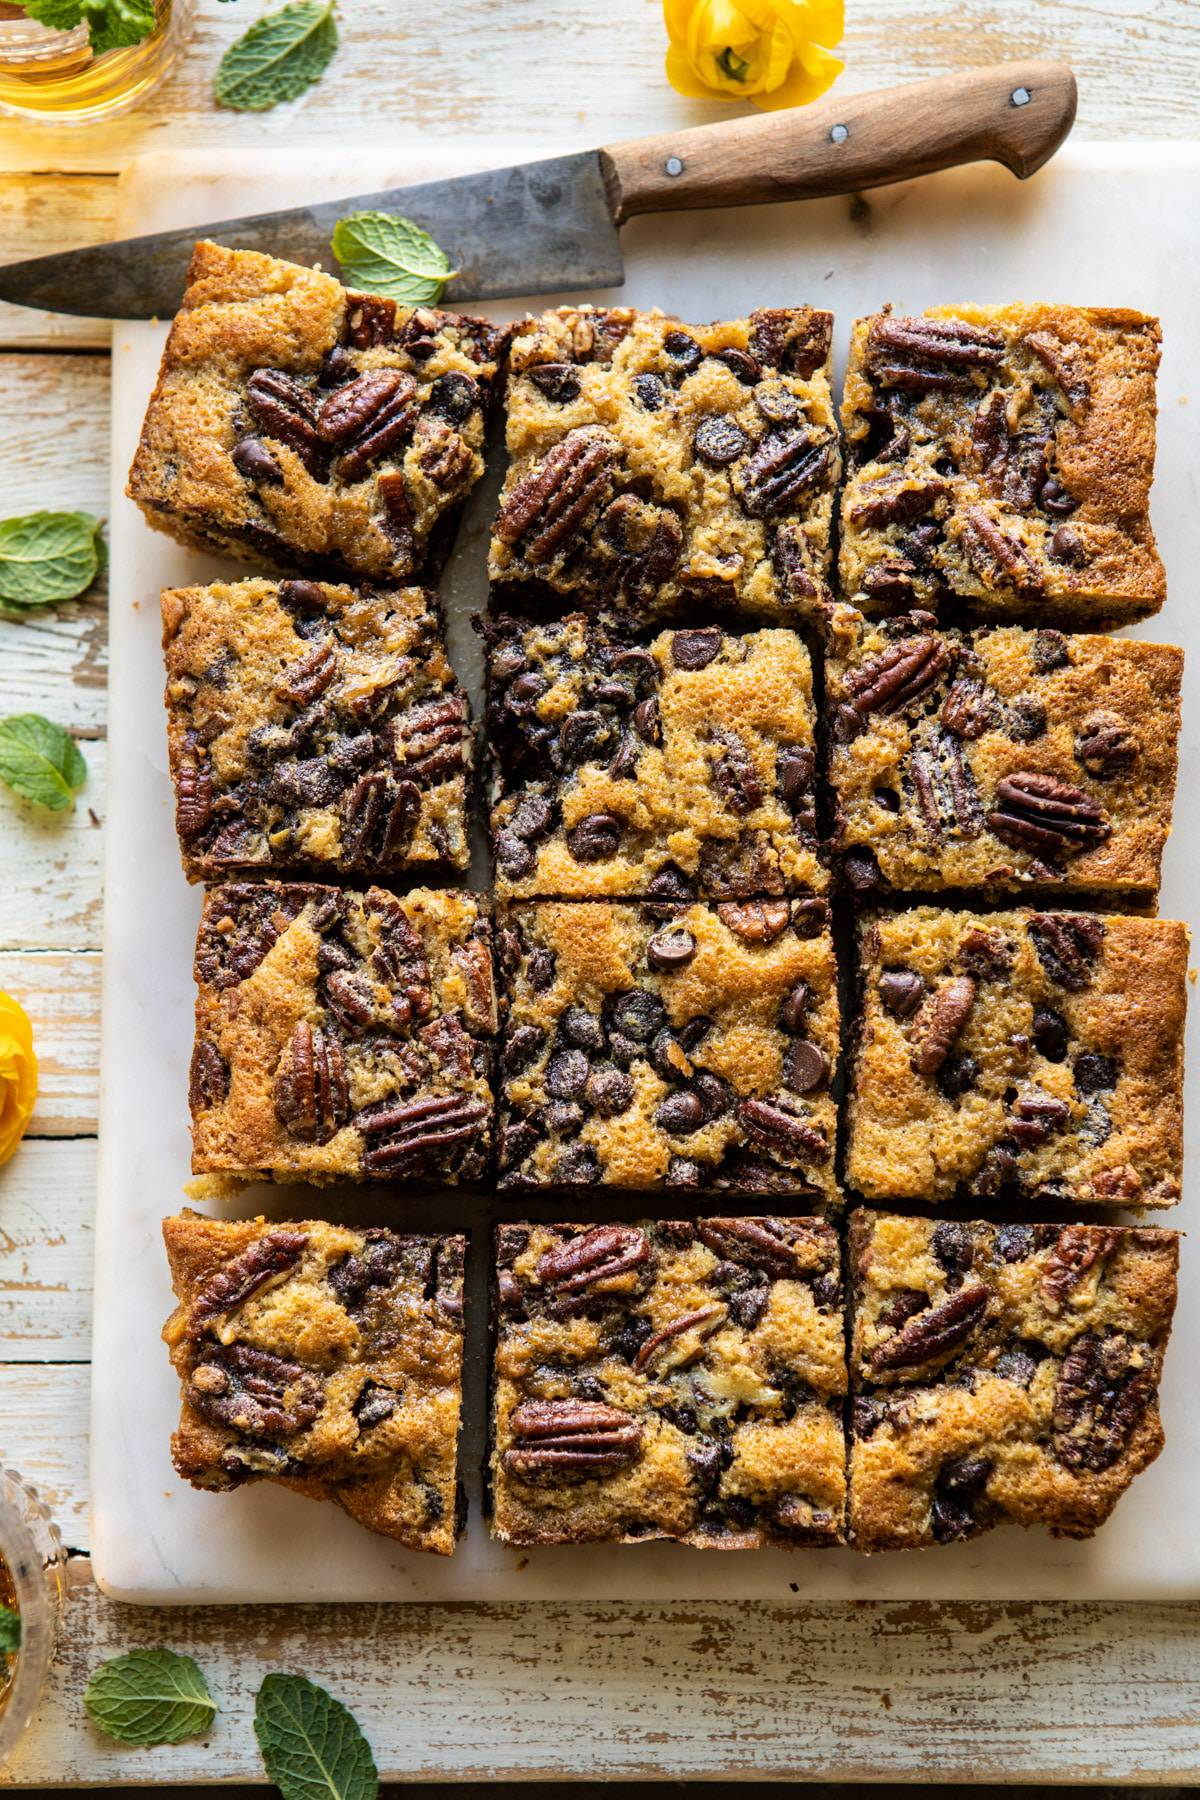 Kentucky Derby Pie Chocolate Chip Cookie Bars | halfbakedharvest.com #cookiebars #pecanpie #chocolatechip #dessert